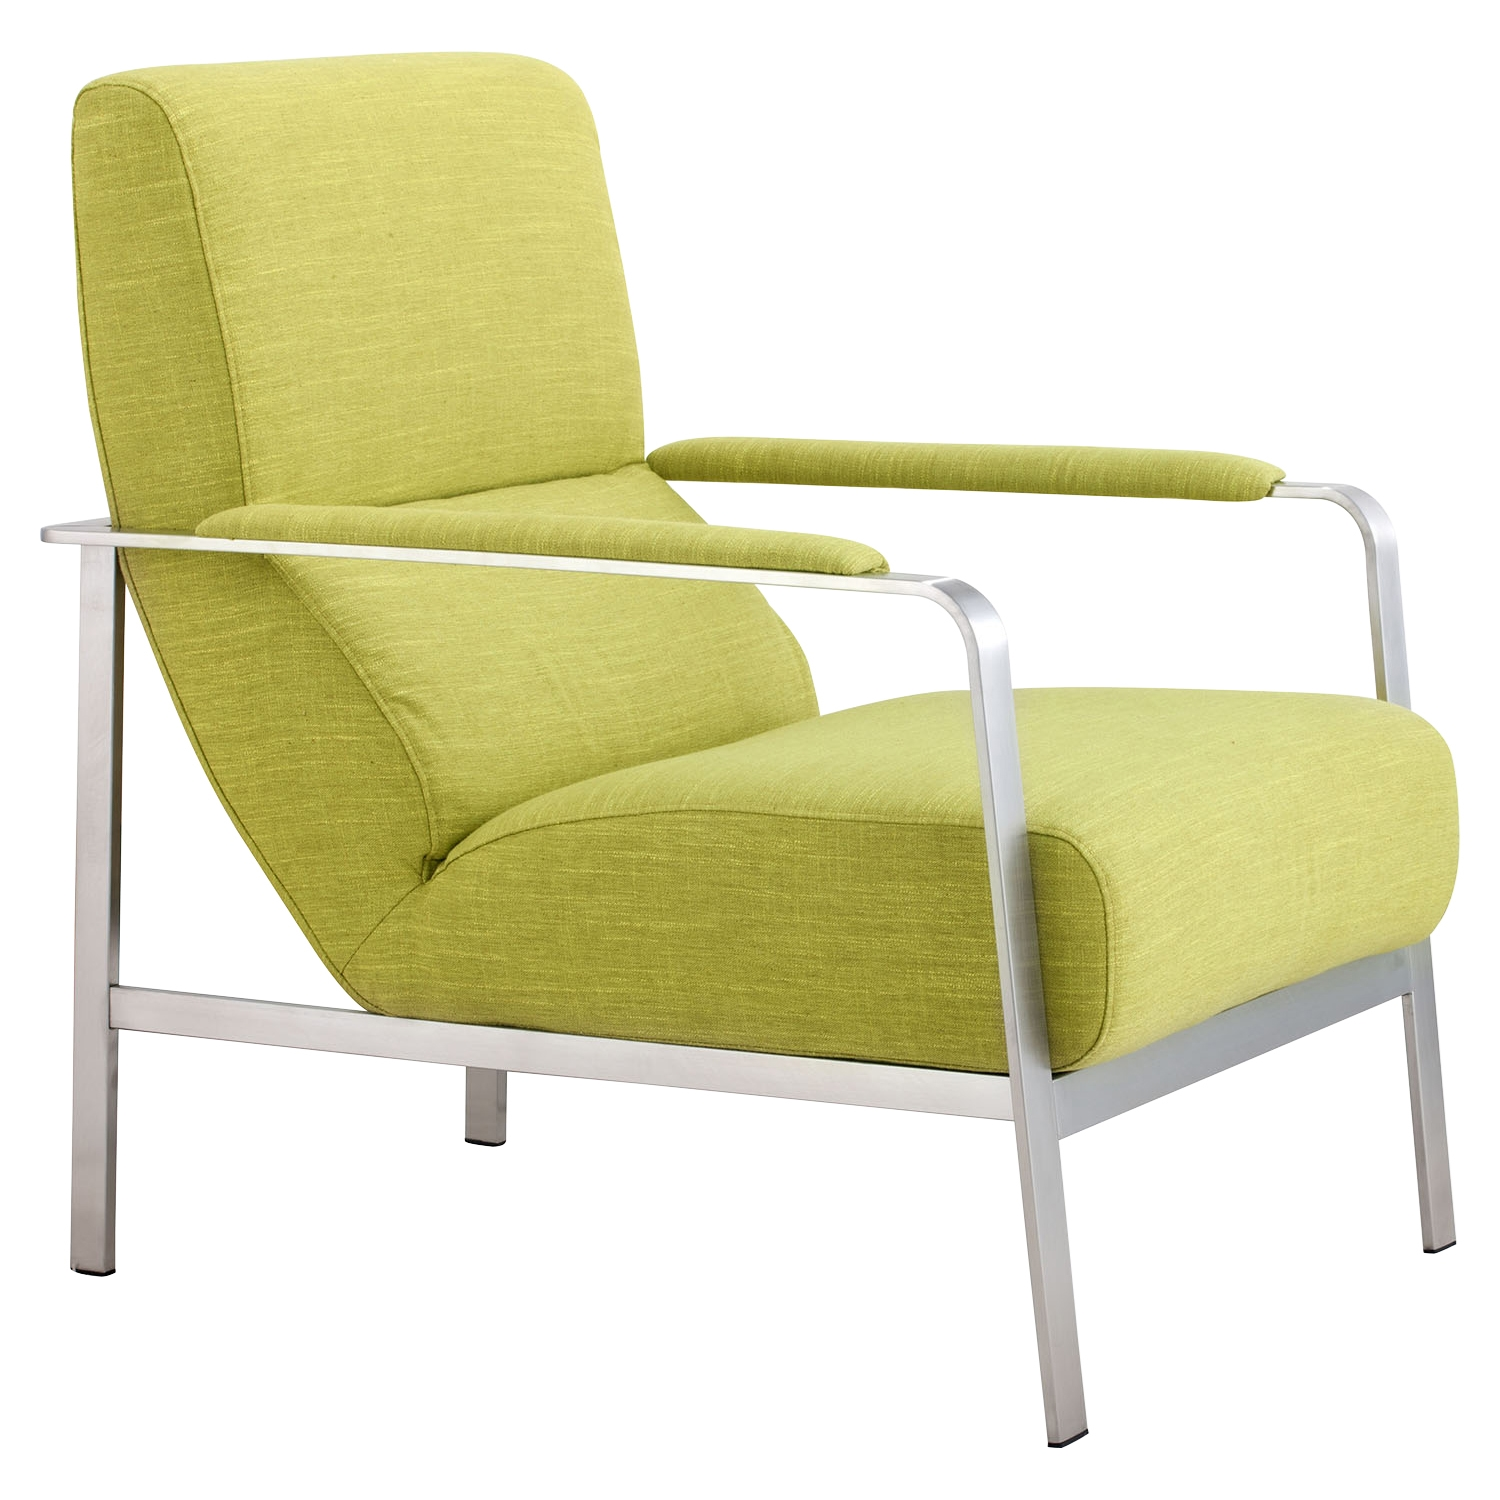 Jonkoping Arm Chair - Lime - ZM-500346